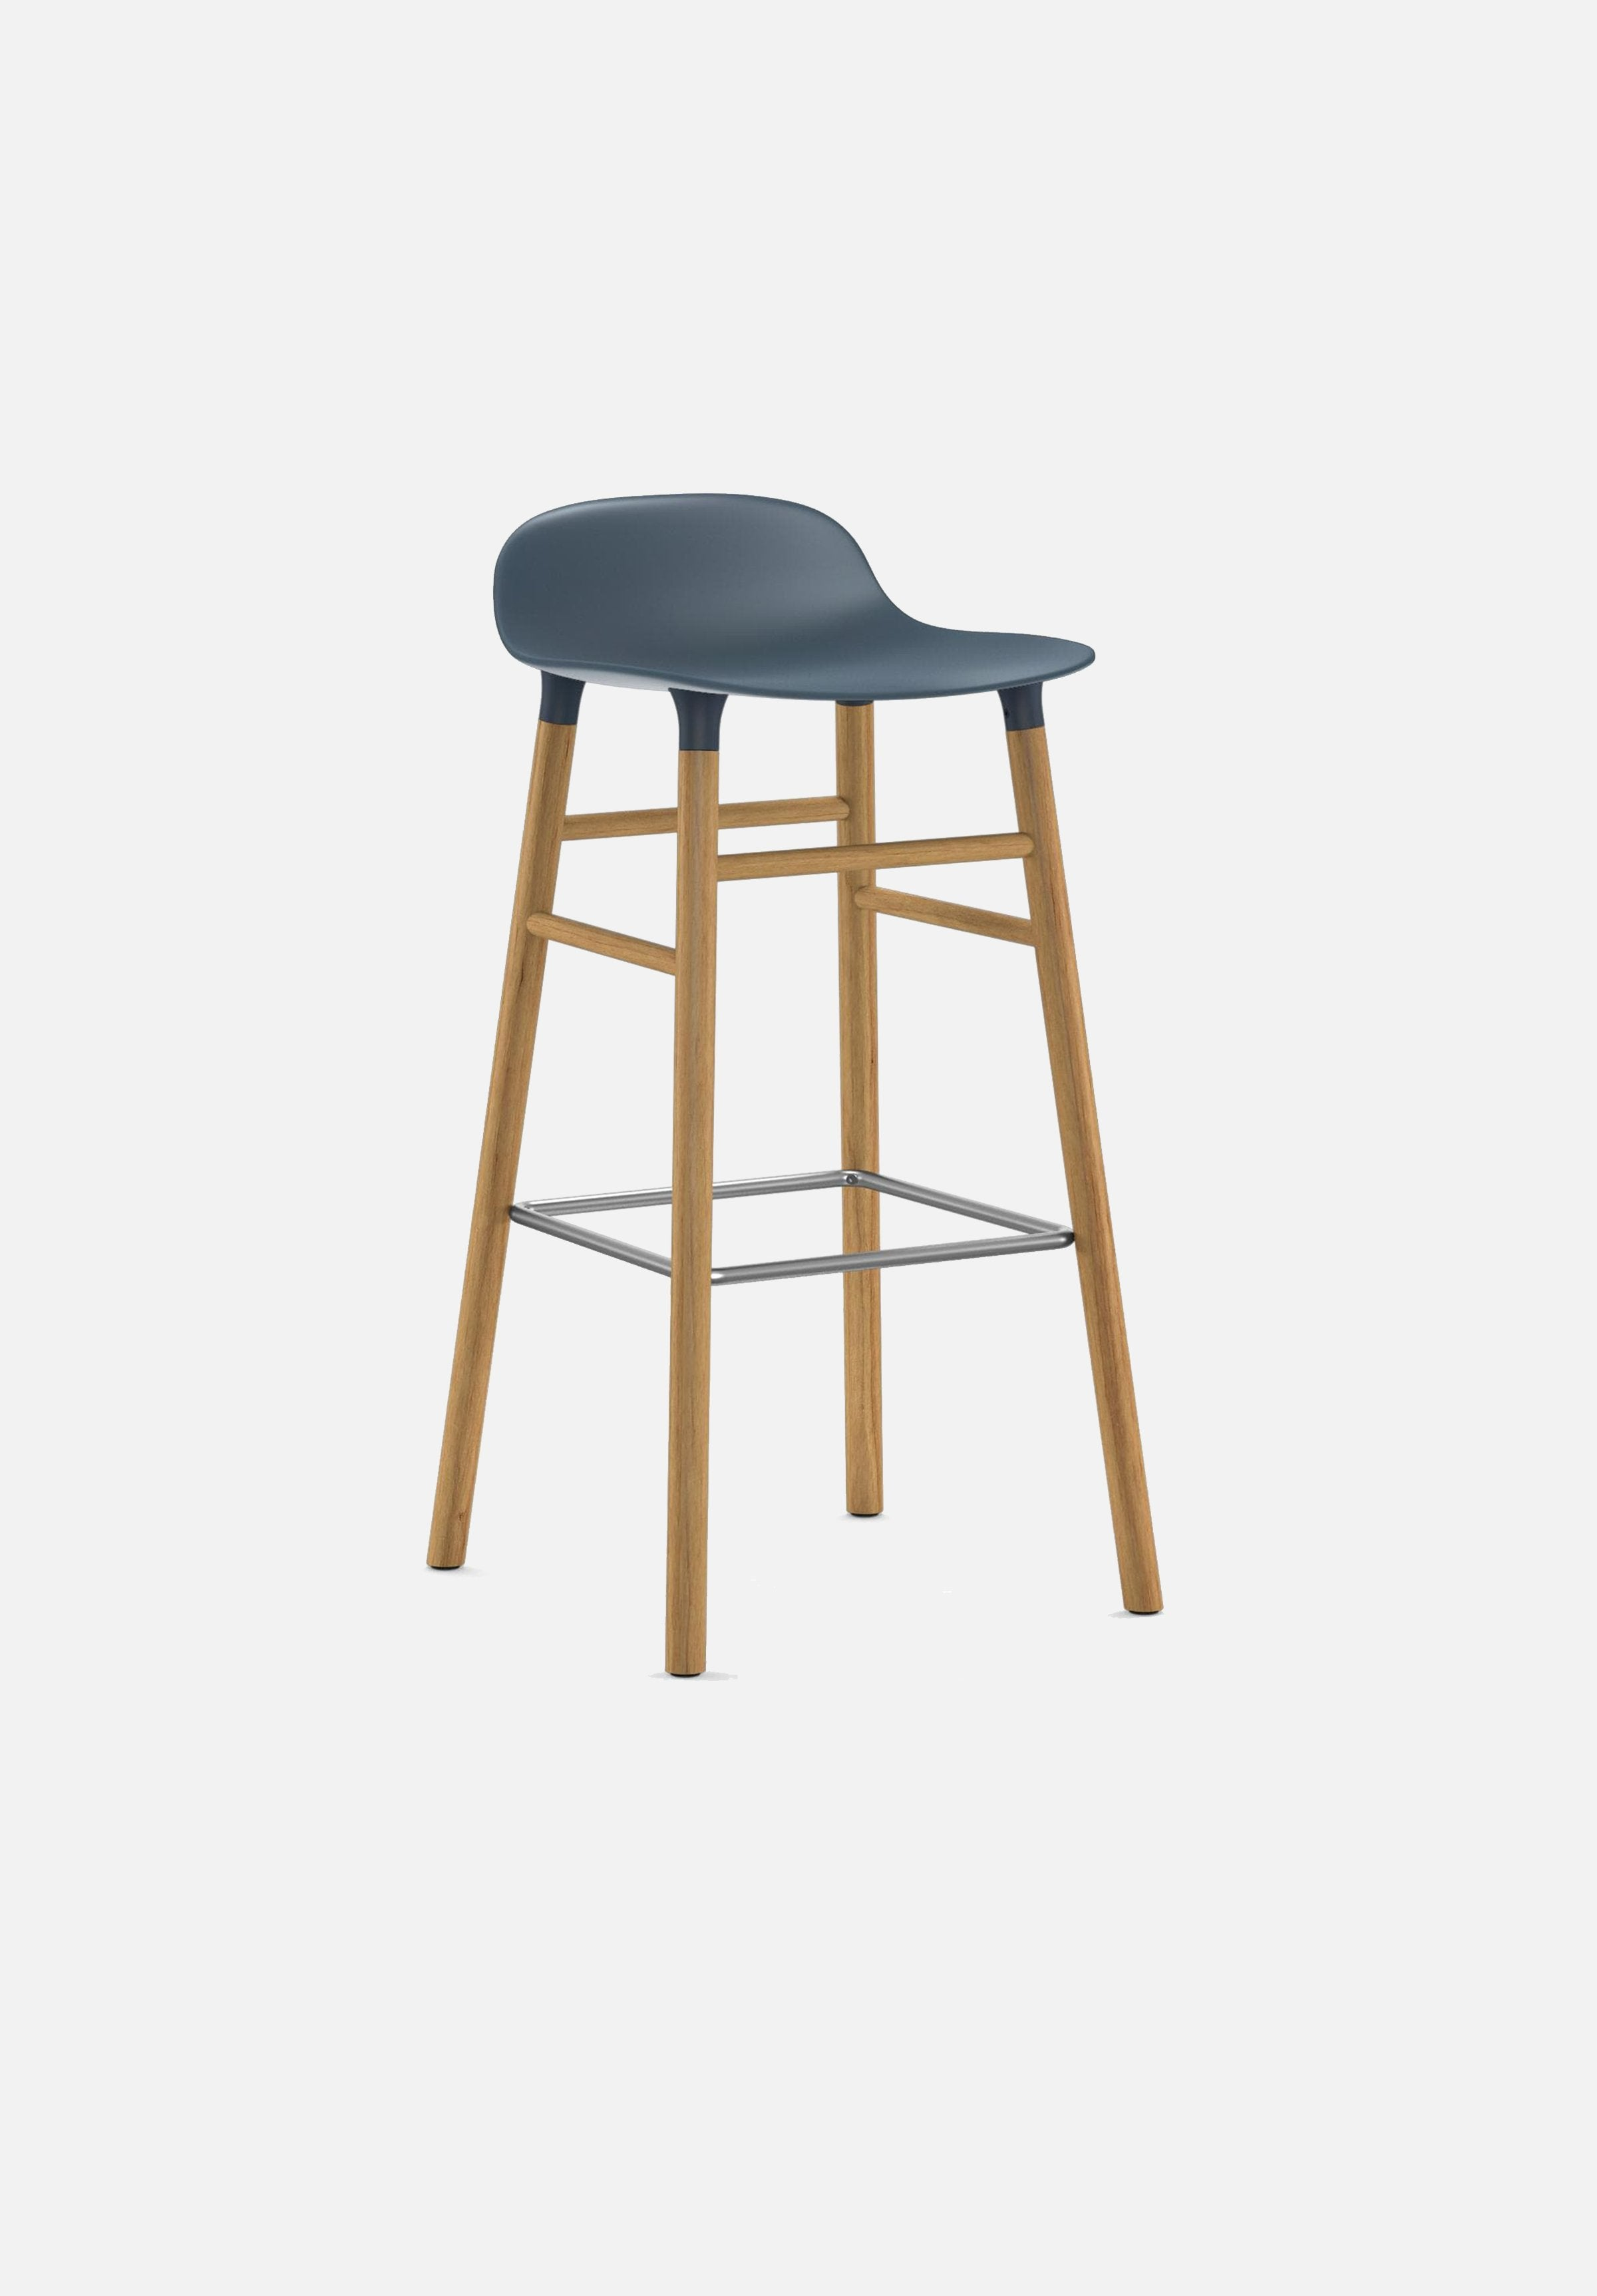 Form Stool — 75cm-Simon Legald-Normann Copenhagen-Blue-Solid Oak-Average-canada-design-store-danish-denmark-furniture-interior